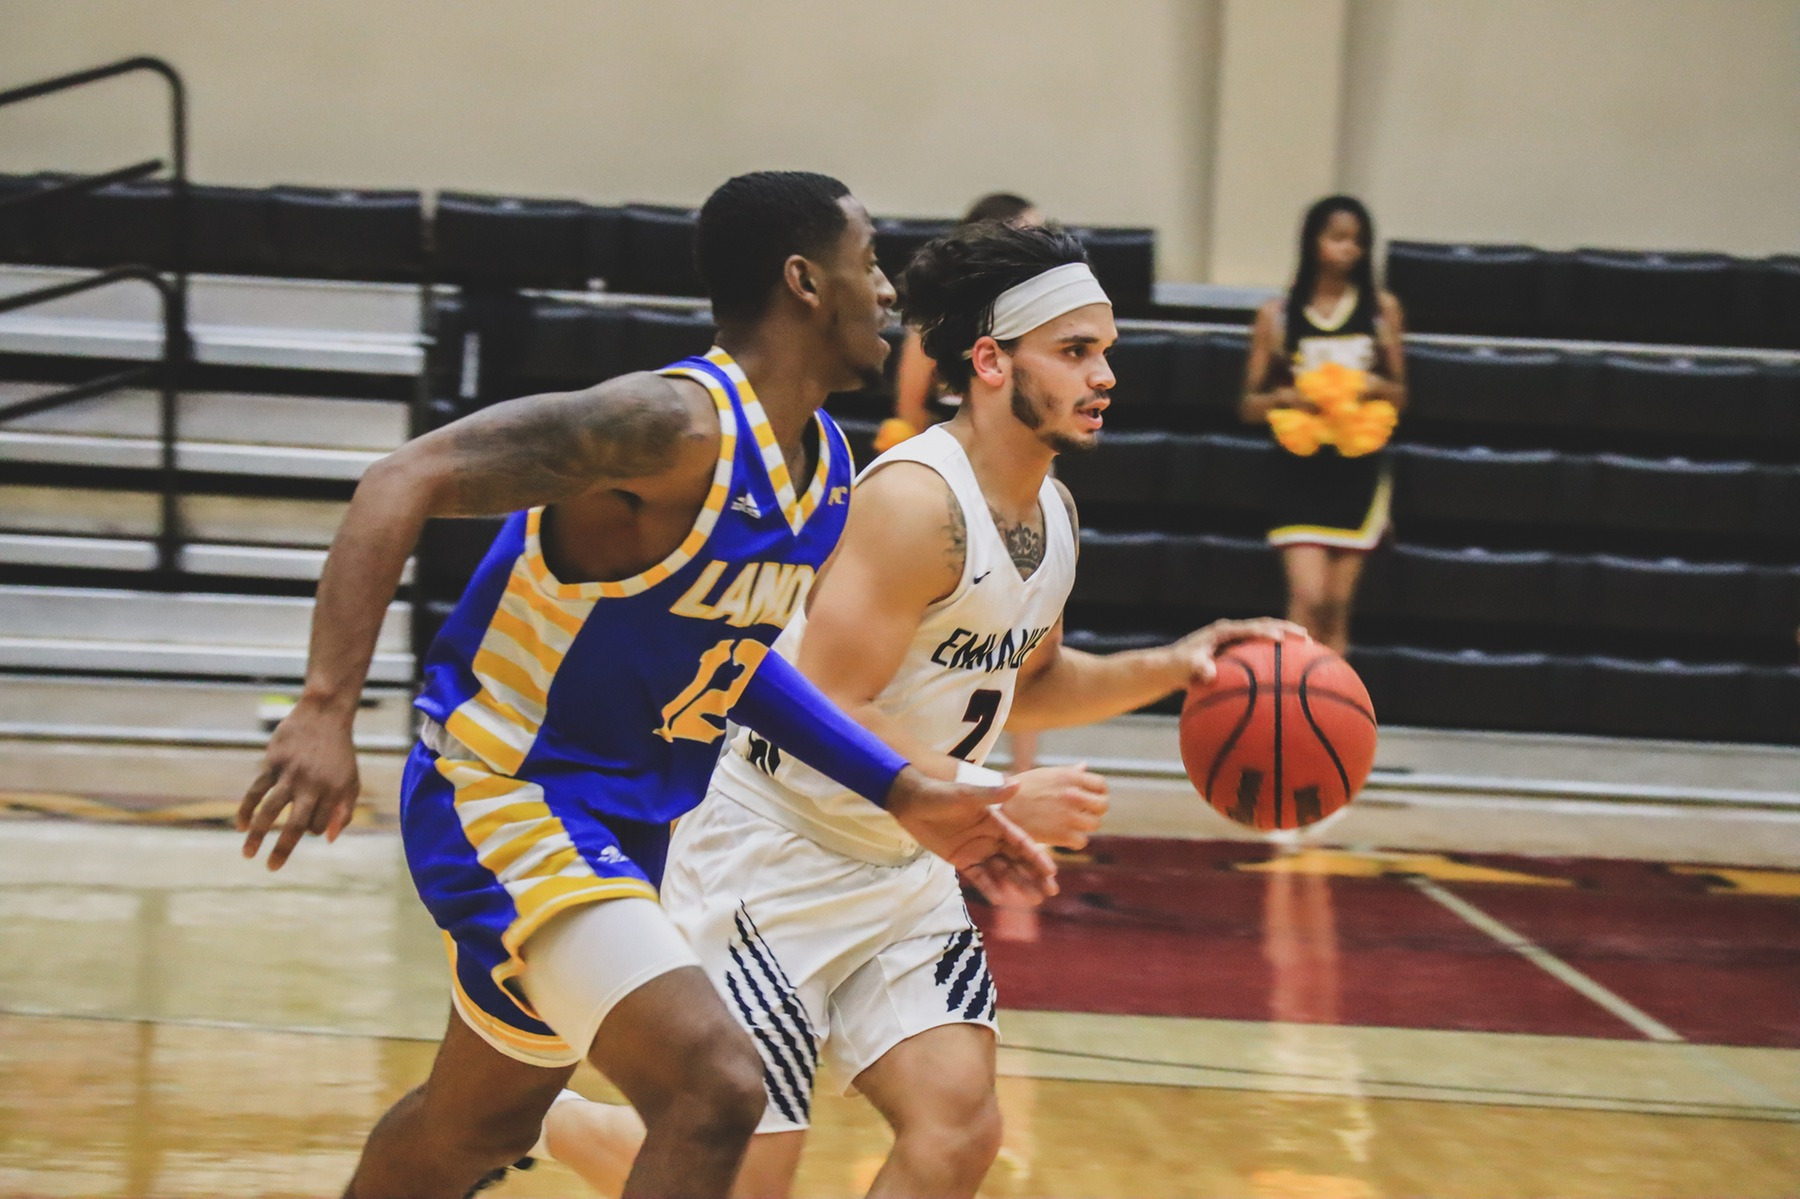 Men's Basketball Suffers First Conference Loss of the Season to King, 88-82